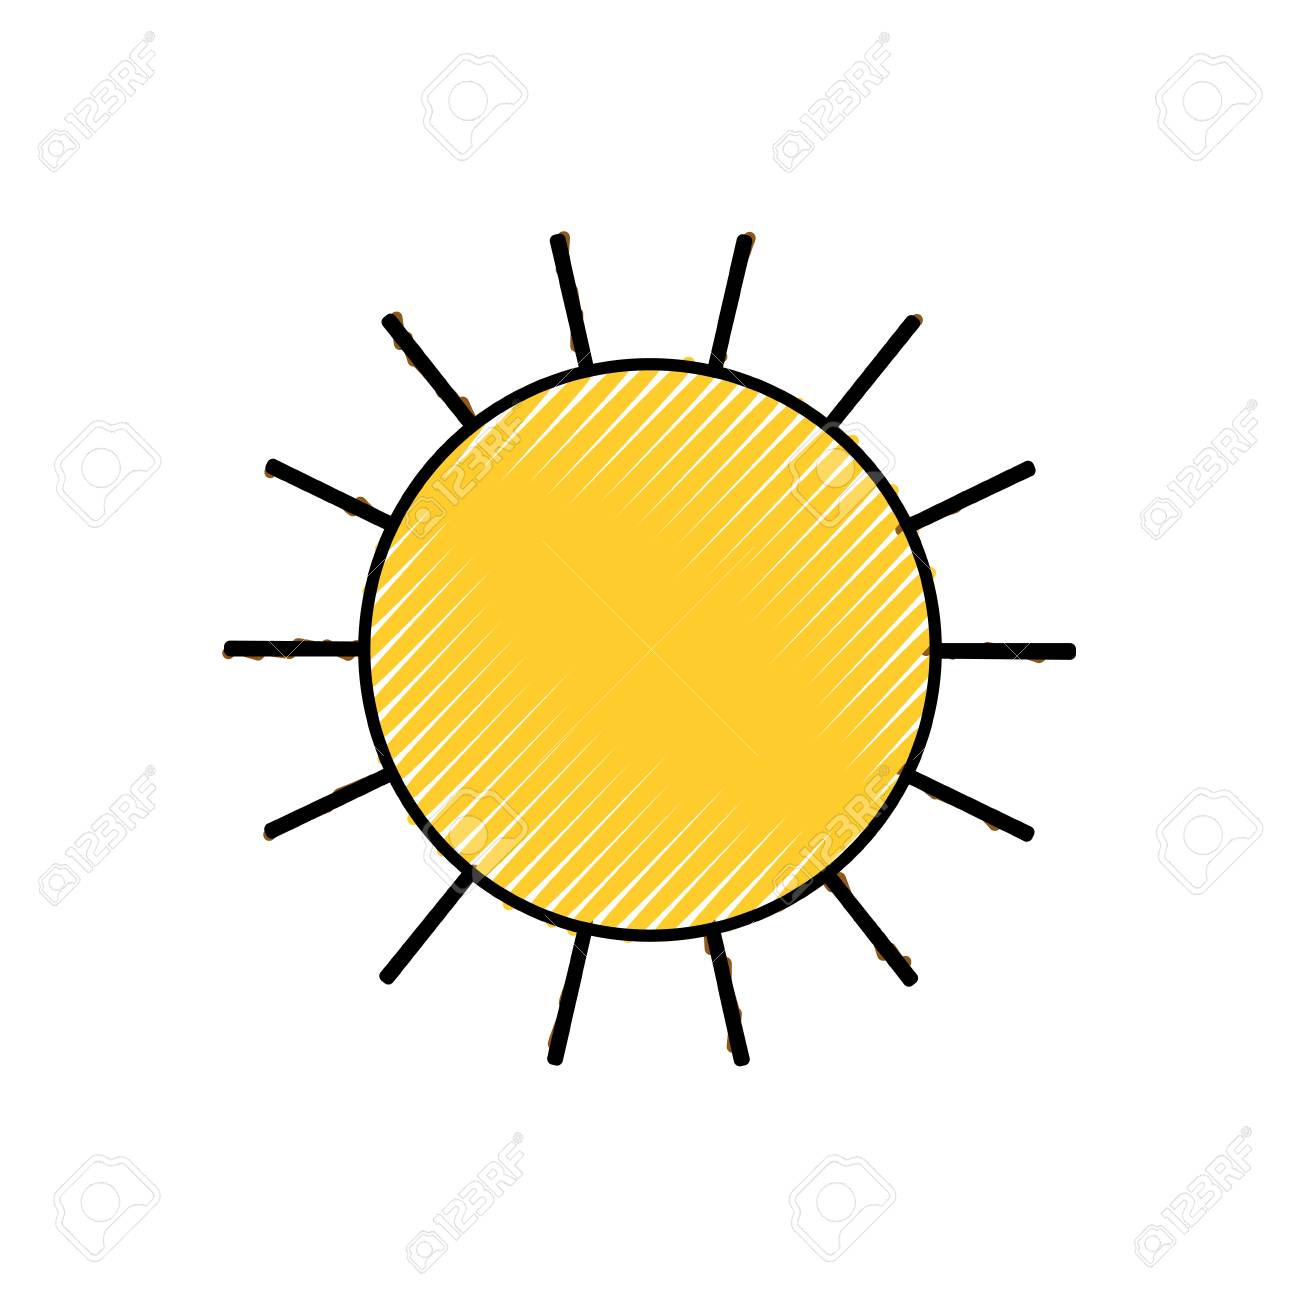 sun icon colored crayon silhouette vector illustration royalty free